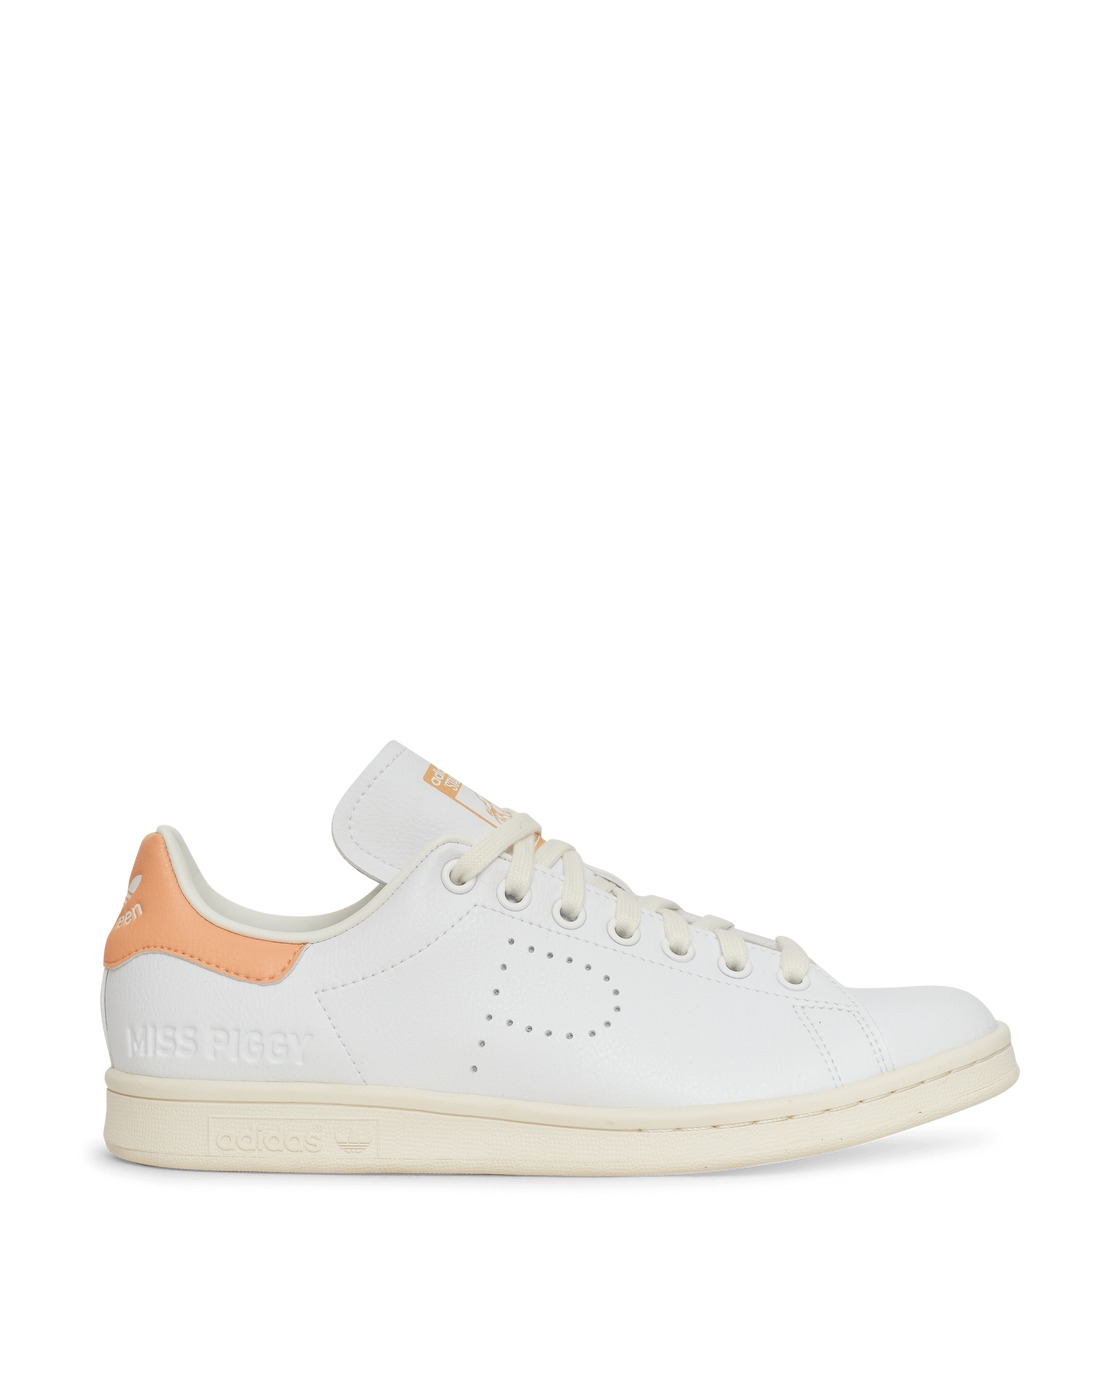 Photo: Adidas Originals Miss Piggy And Kermit Stan Smith Sneakers Ftwr White